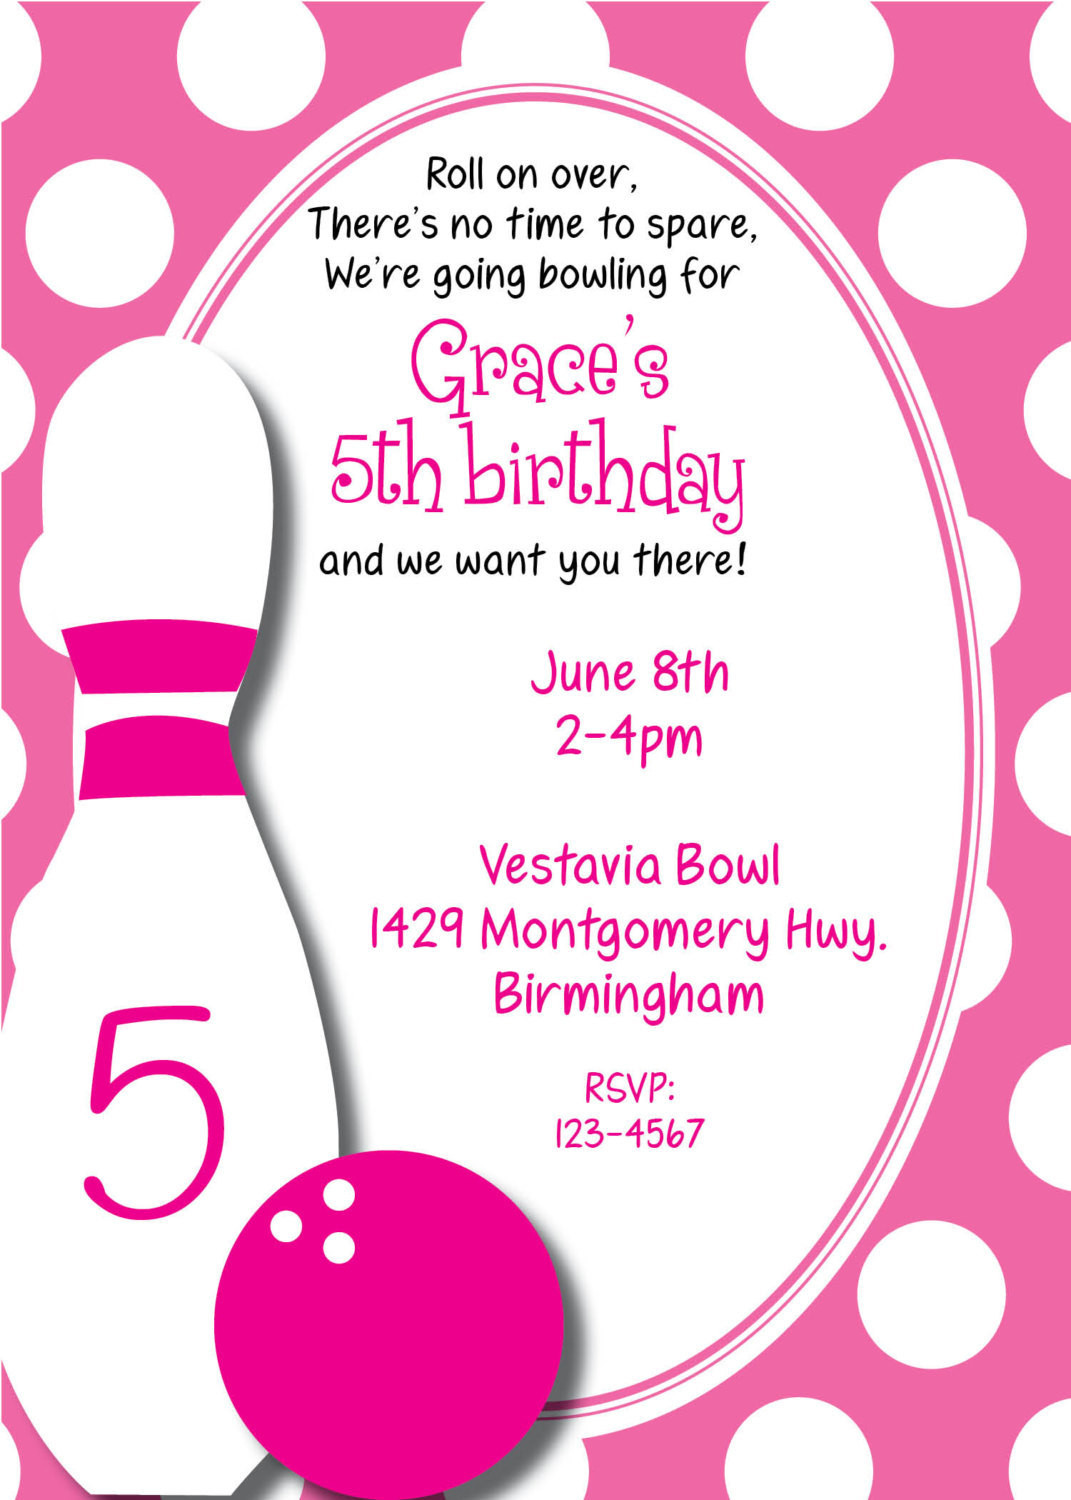 Best ideas about Bowling Birthday Invitations . Save or Pin Bowling Birthday Invitation Now.